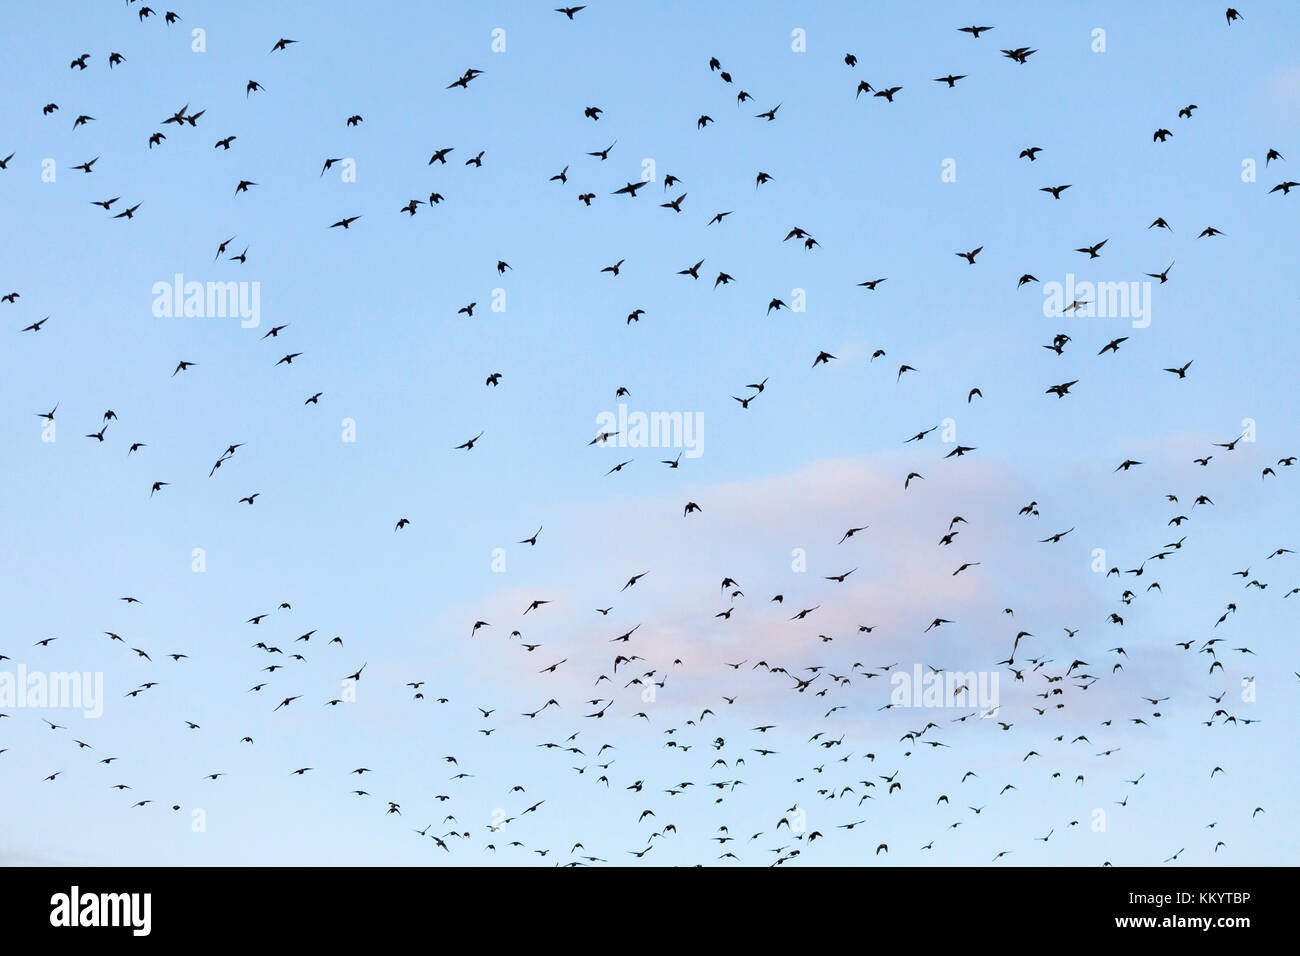 Hundreds of starlings sturnus vulgaris fill the sky - Stock Image